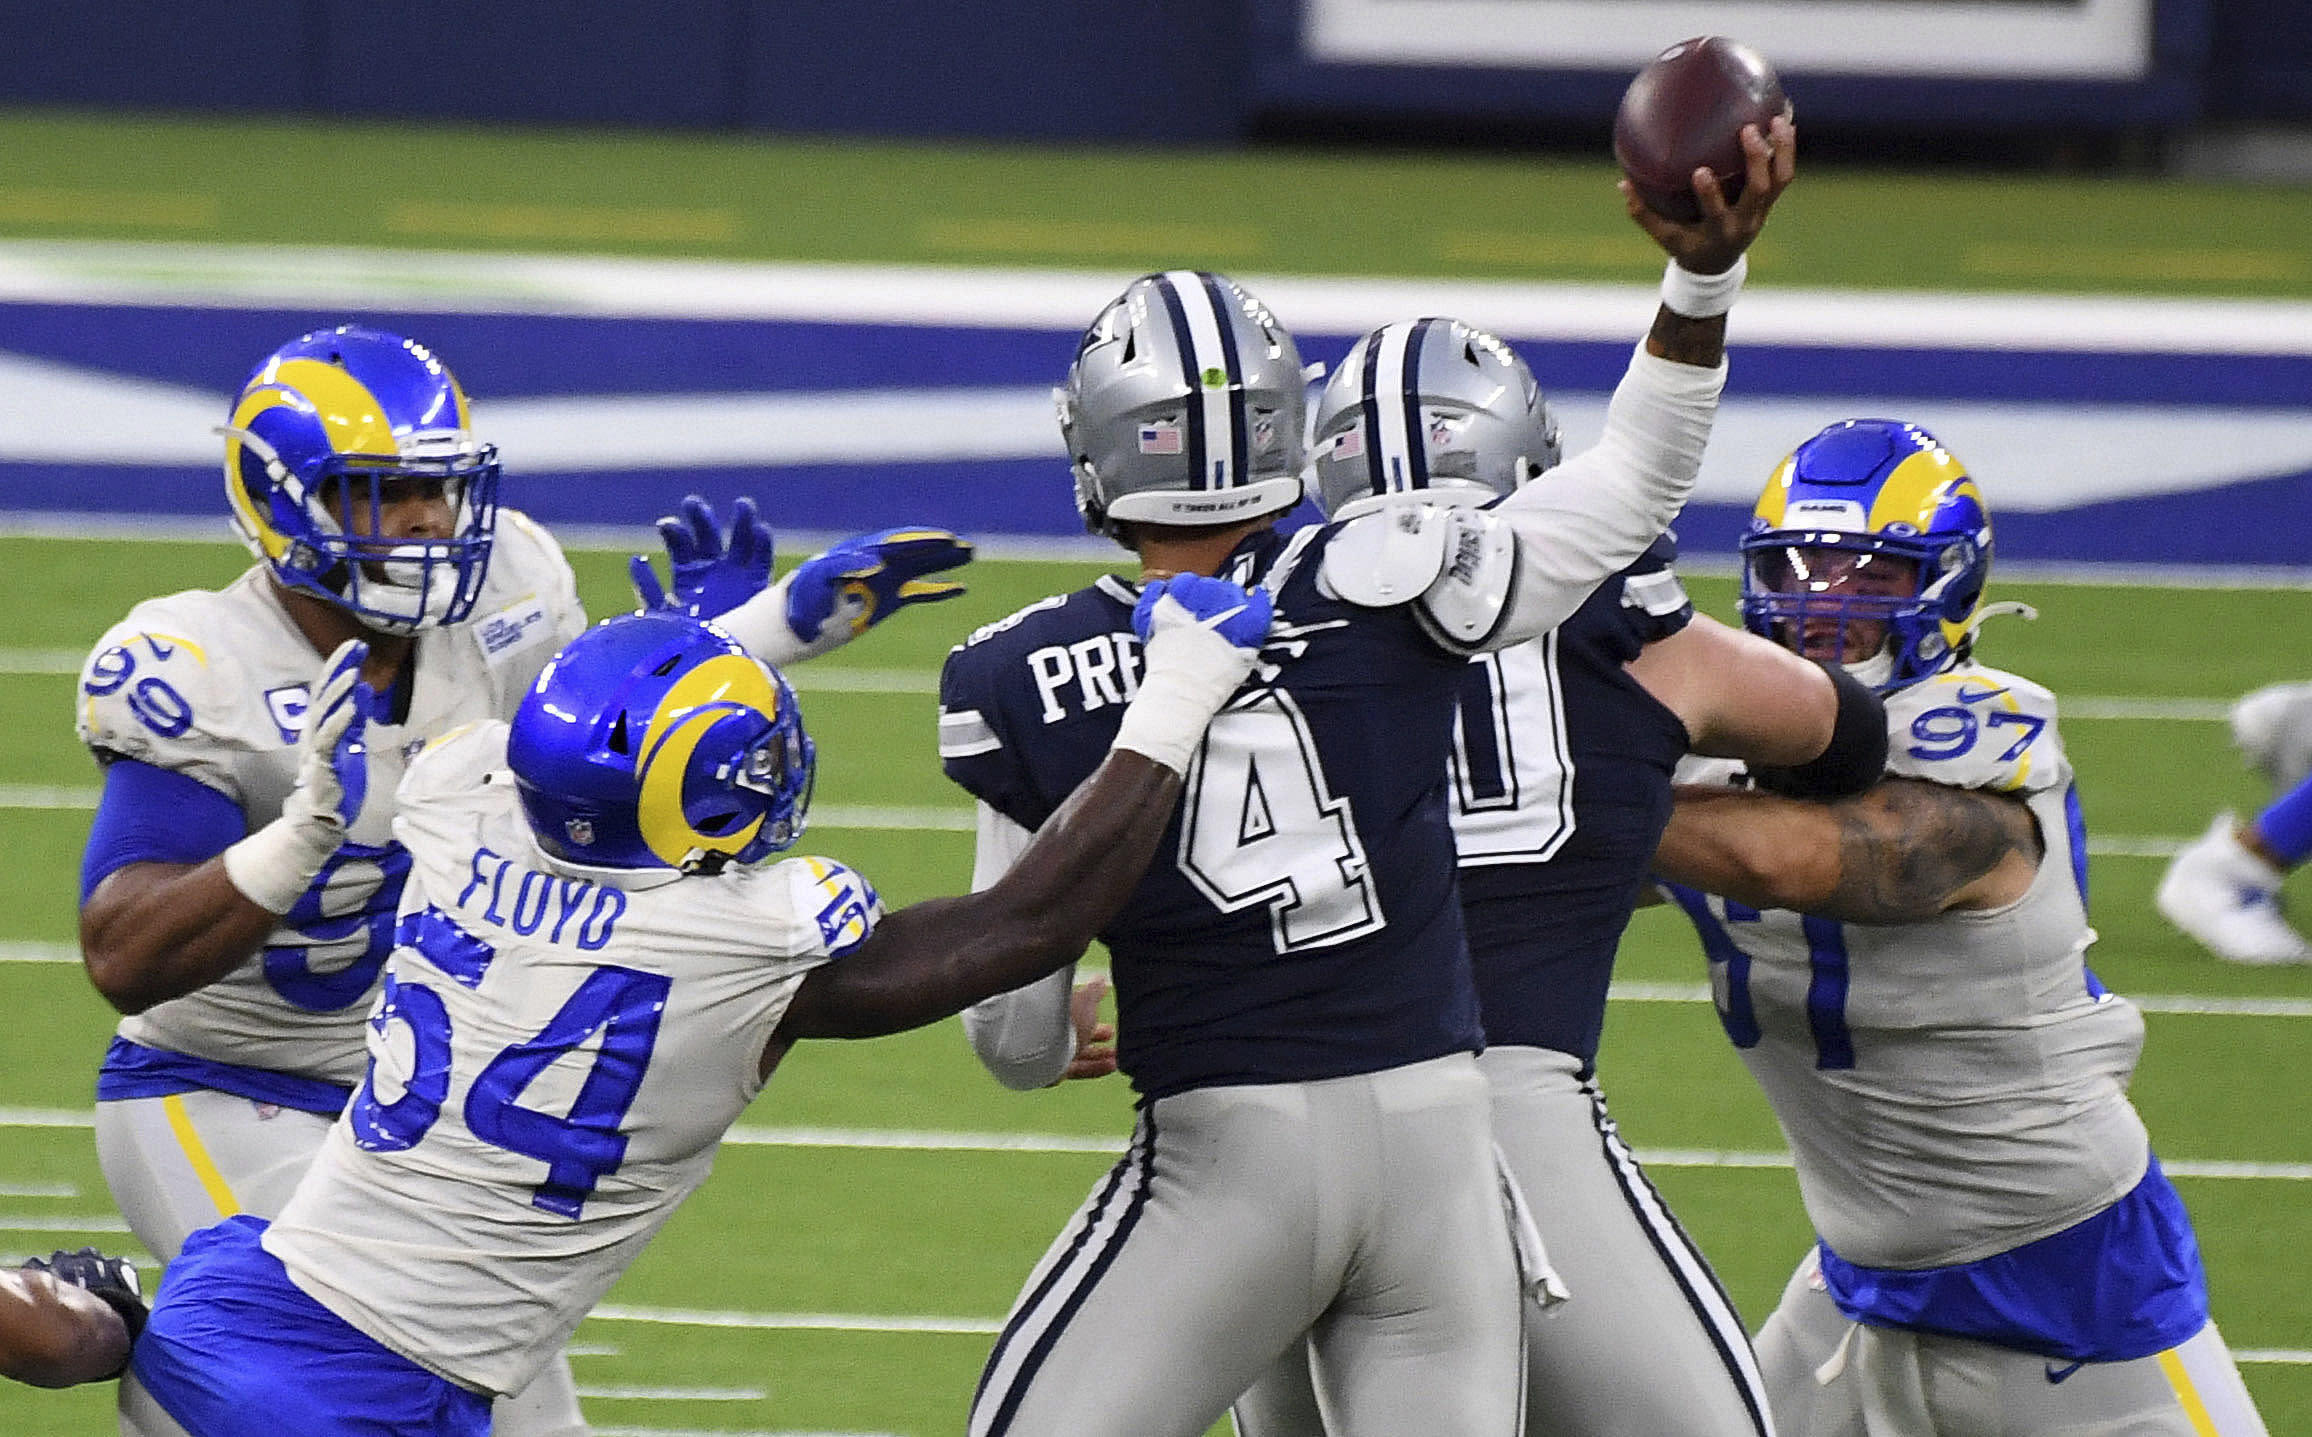 Outside linebacker Leonard Floyd (54) of the Los Angeles Rams pressures quarterback Dak Prescott (4) of the Dallas Cowboys in the first half of a NFL football game on opening night at SoFi Stadium in Inglewood on Sunday, September 13, 2020. (Keith Birmingham/The Orange County Register via AP)